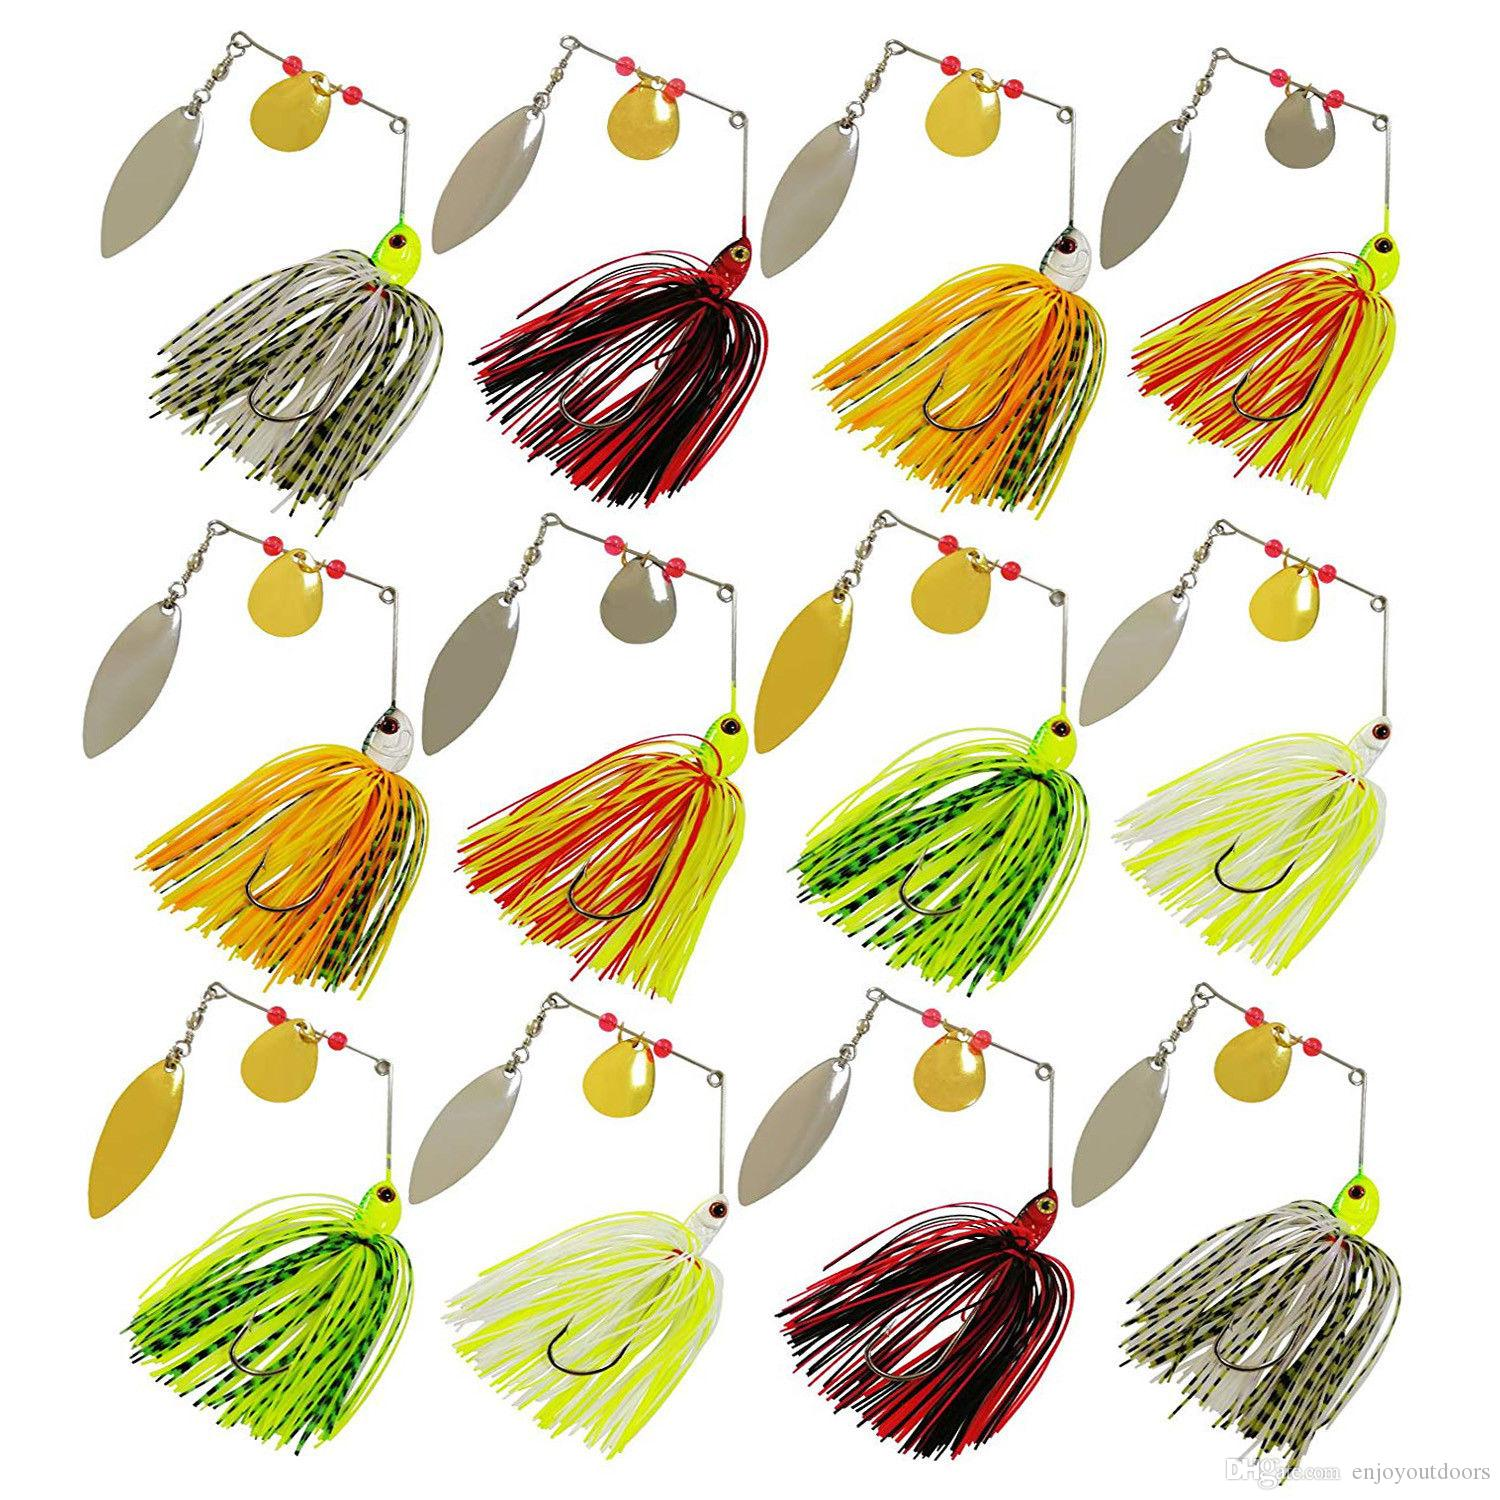 Lifelike Spinnerbaits Lures 12pcs Jigs Head Rubber Fishing Lure Pike Bass Fishing Spinner Spoons Swimbaits Tackle